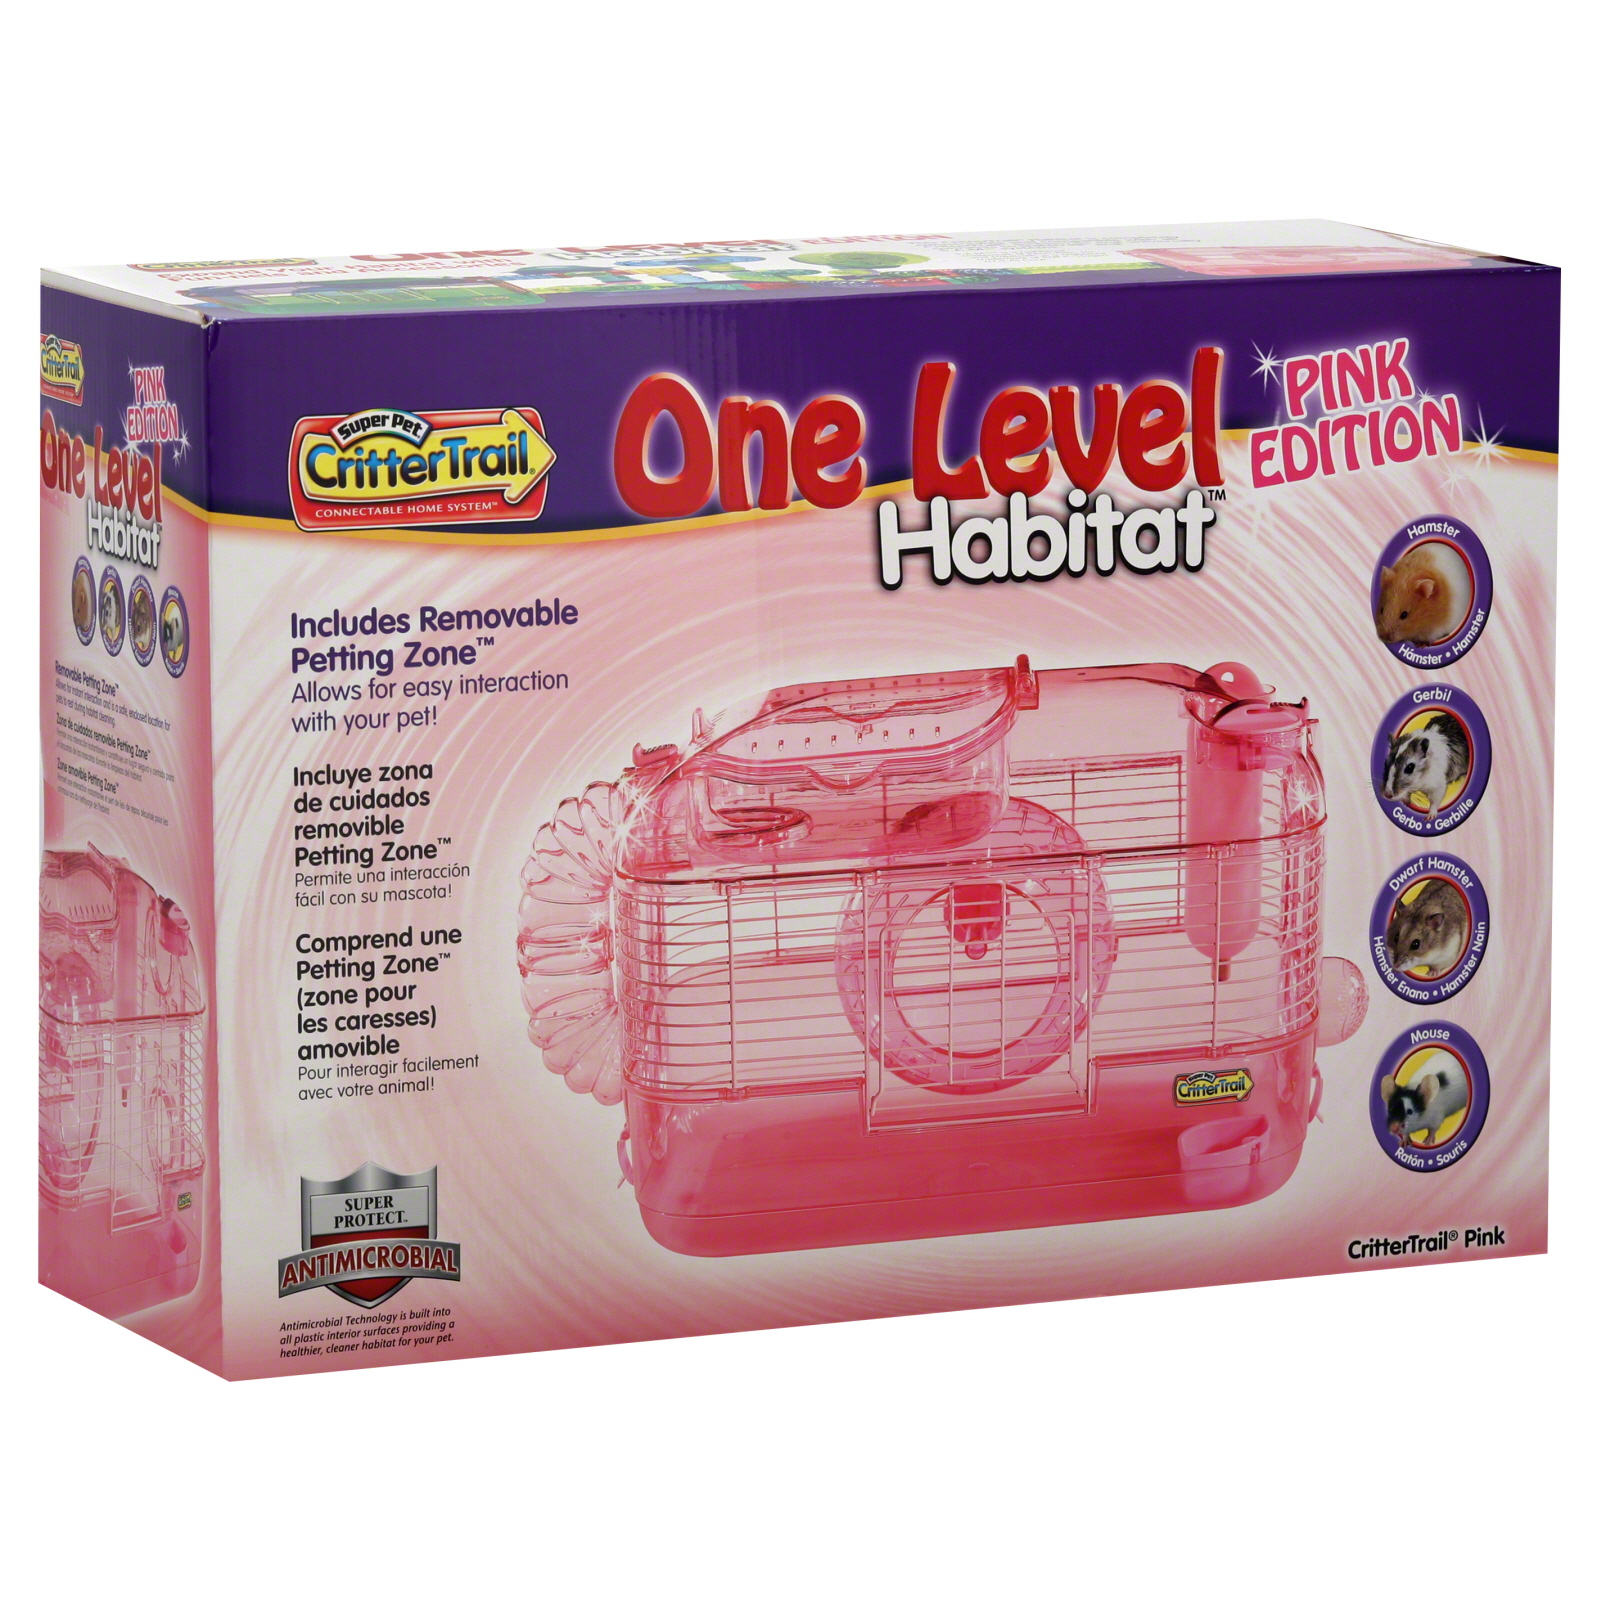 Pets International Ltd. Habitat, One Level, Pink Edition, 1 habitat